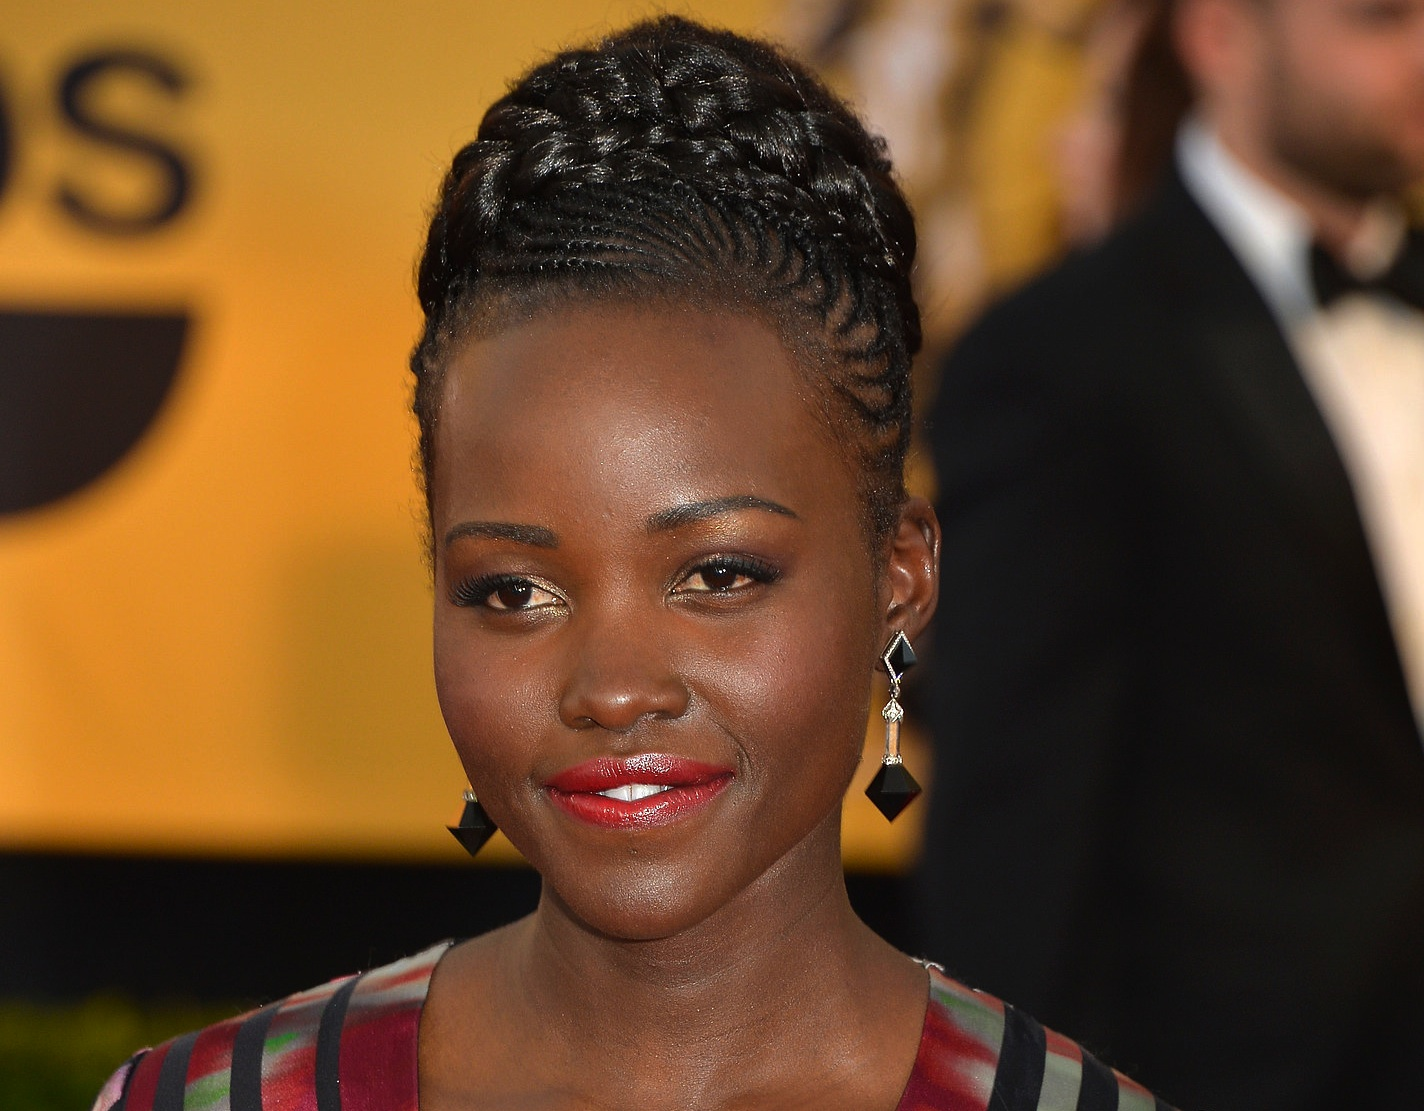 Lupita Nyong'o, Hair Glam Moment At The SAG Awards